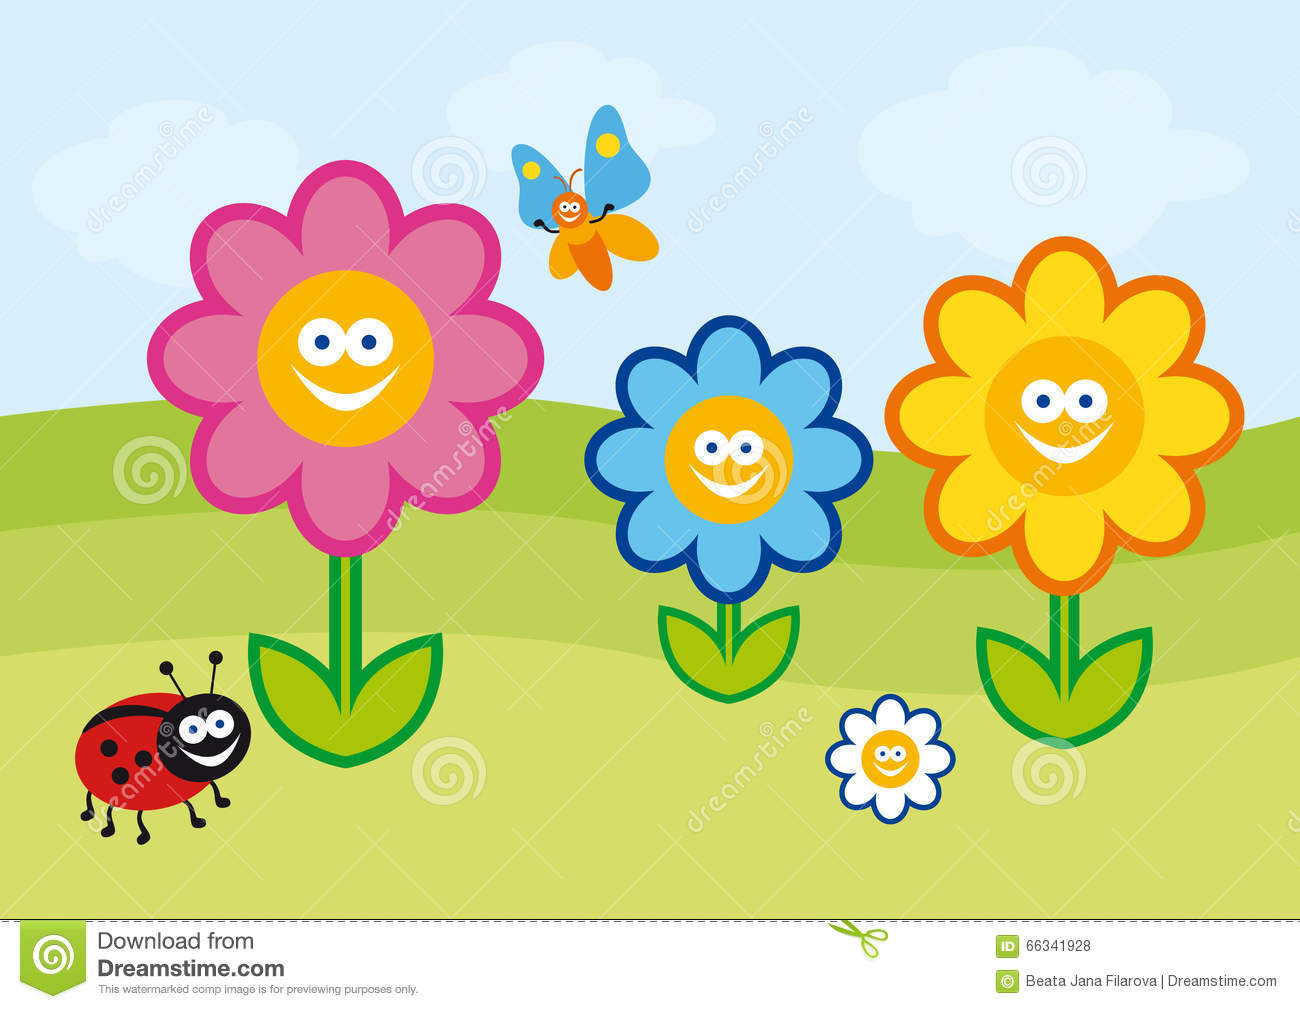 Funny Flower Illustration Stock Vector Illustration Of Cartoon